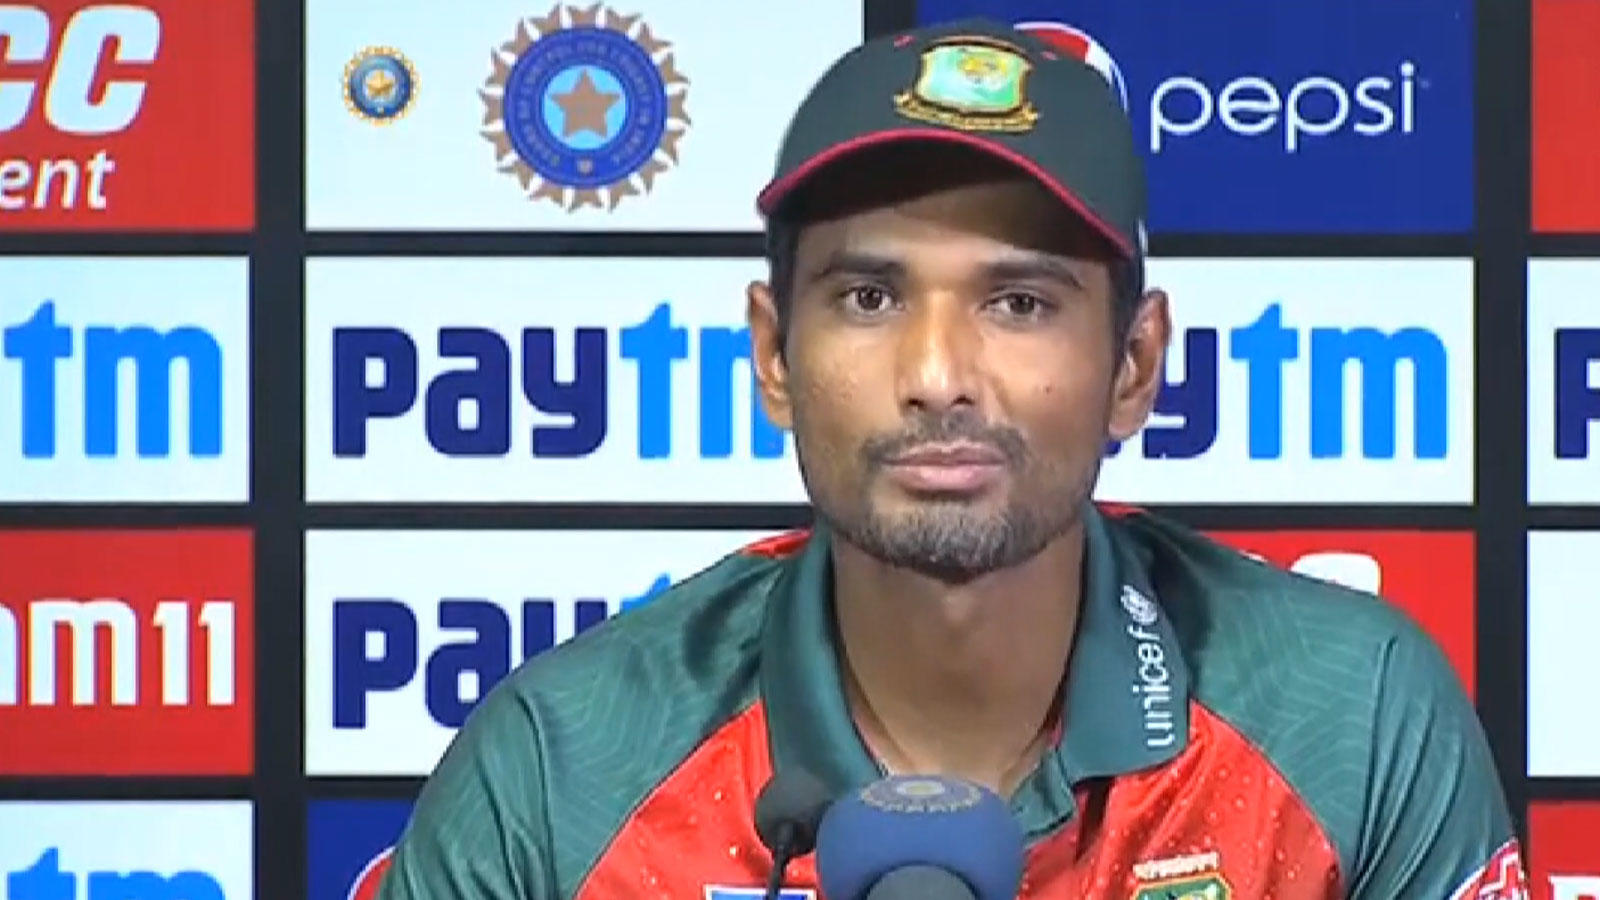 ind-vs-ban-losing-wickets-rapidly-cost-us-the-match-says-mahmudullah-riyad